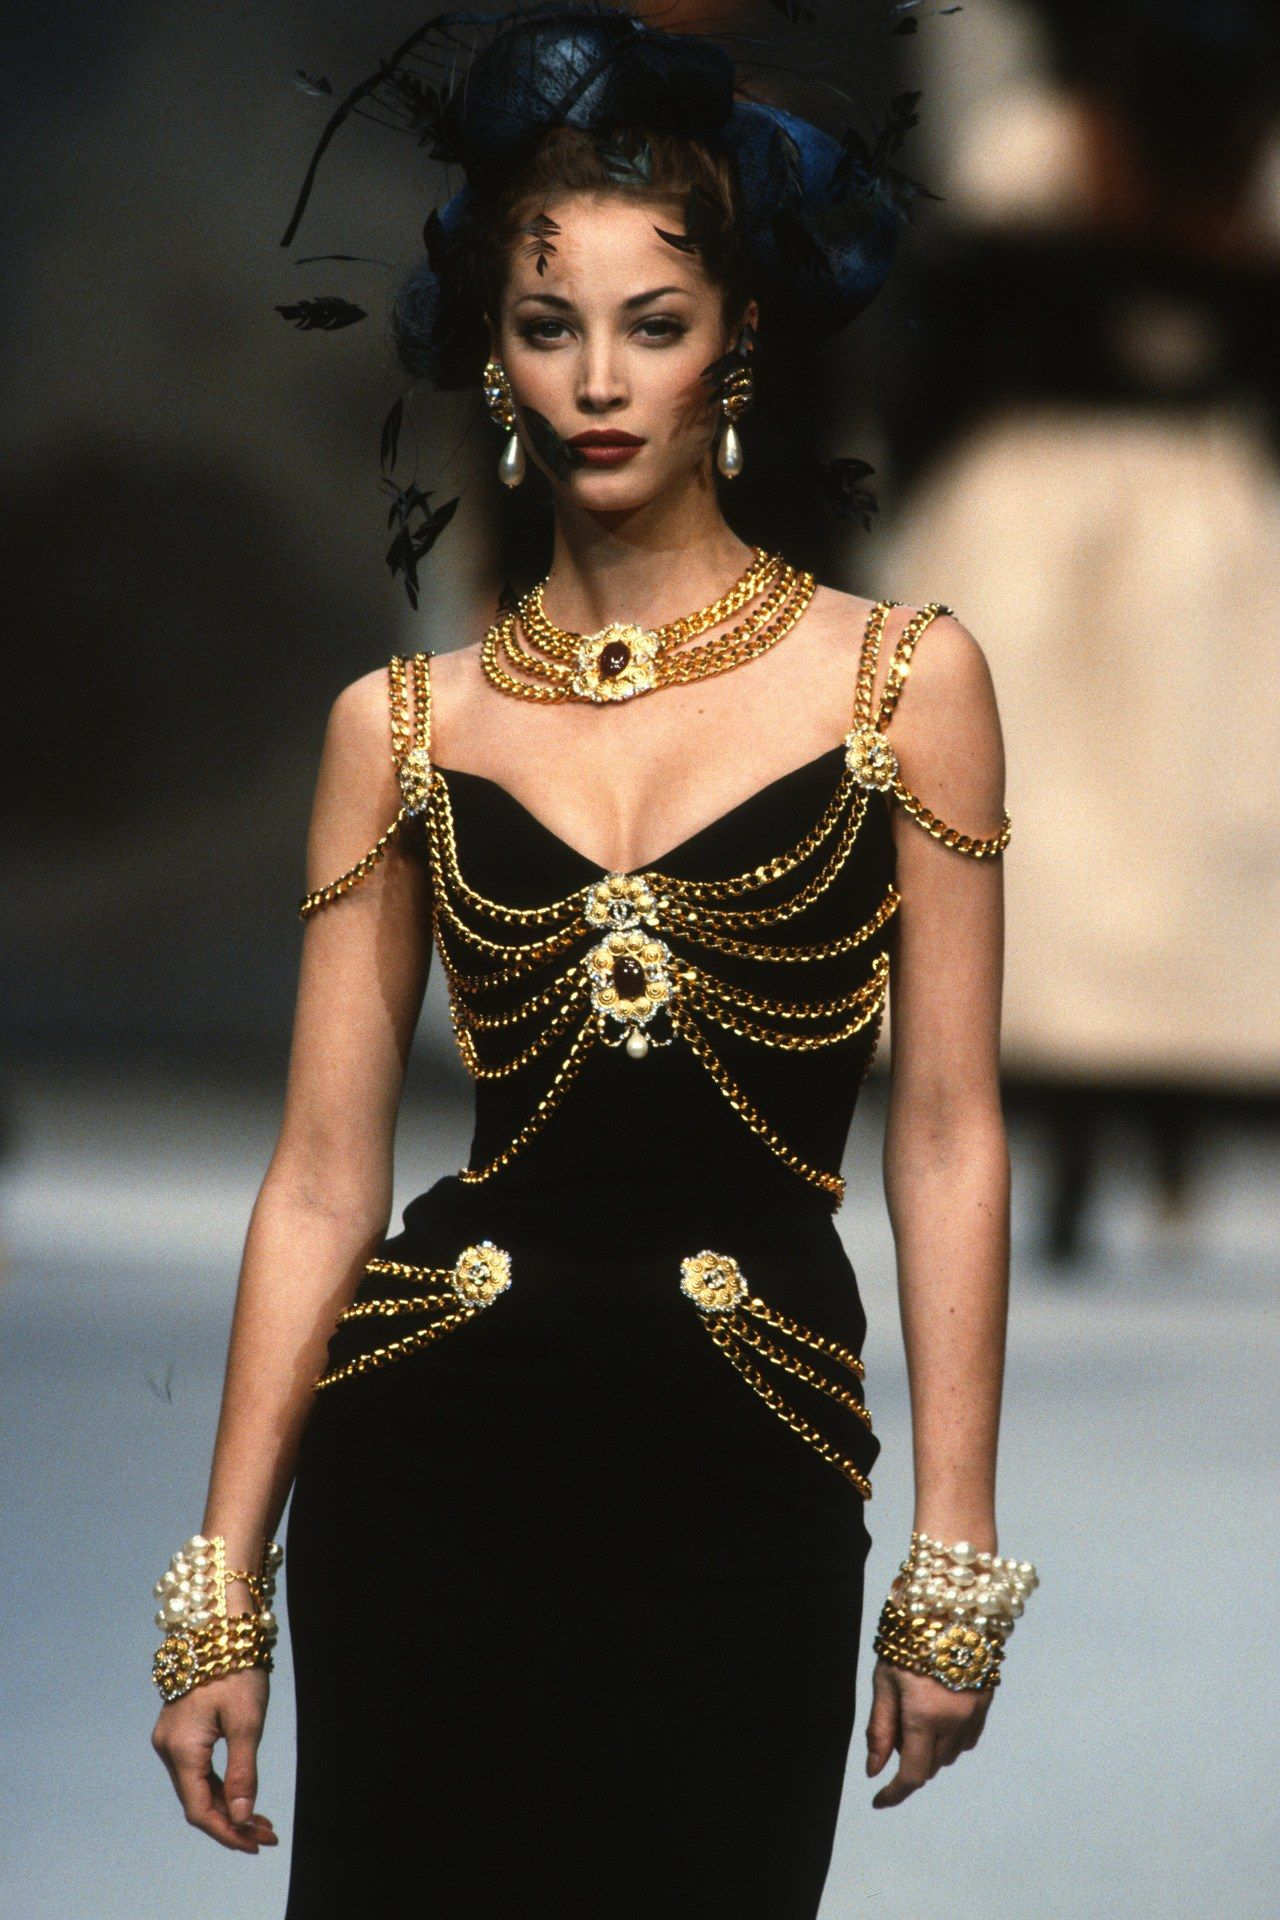 Photo of The most incredible vintage Chanel jewelry from the 1980s and 1990s